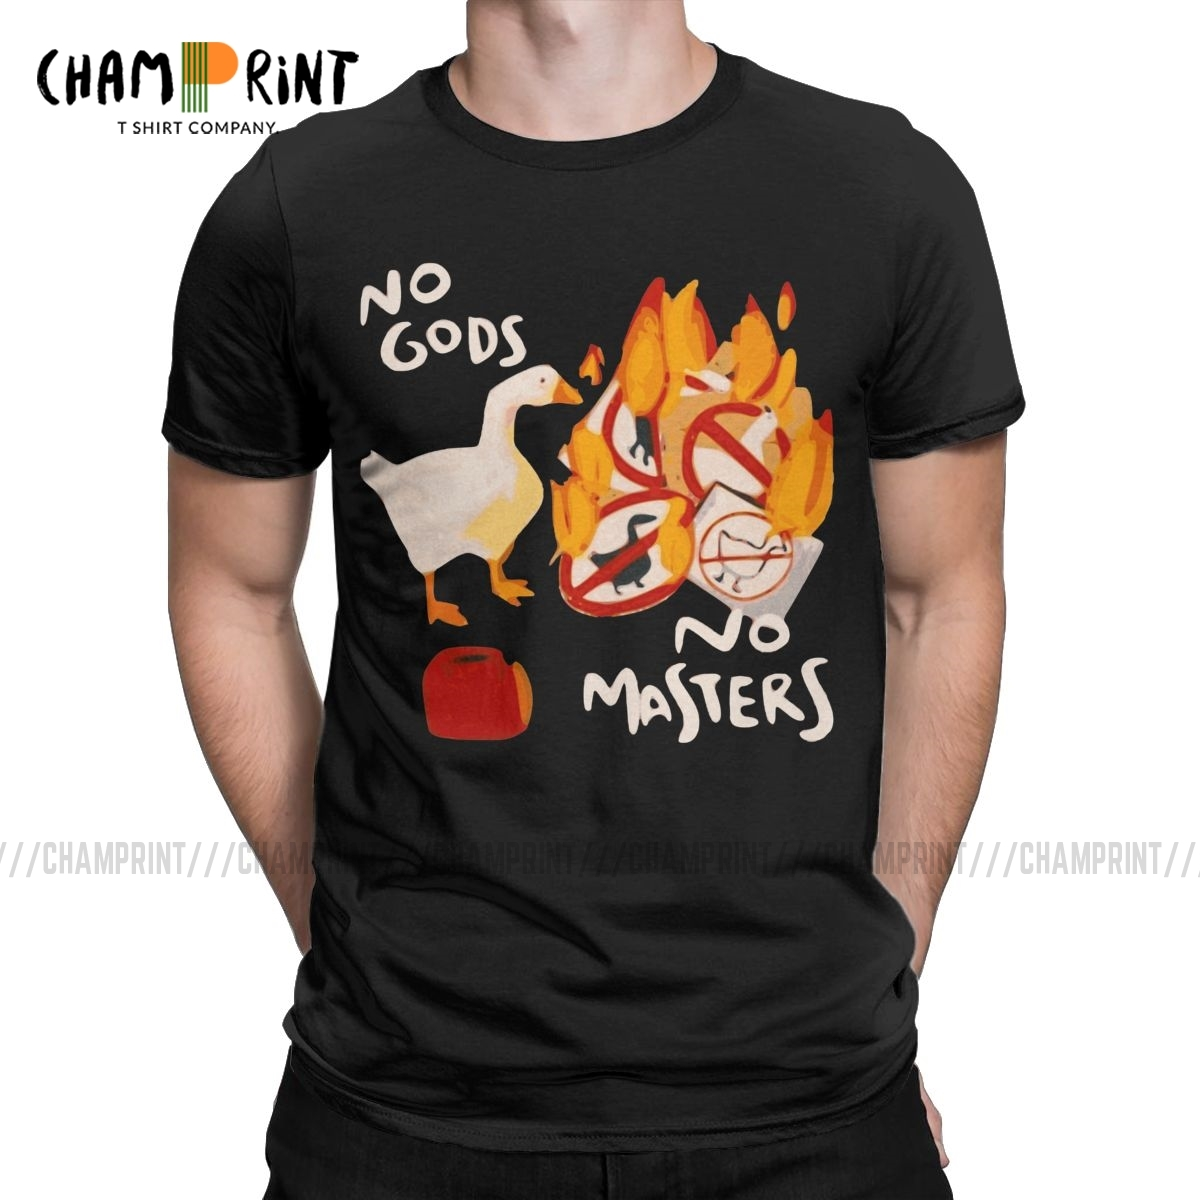 Men's T-<font><b>Shirts</b></font> Untitled Goose Game No <font><b>God</b></font> No Masters Meme Funny Tee <font><b>Shirt</b></font> Short Sleeve T <font><b>Shirts</b></font> Crew Neck Clothes 5XL image